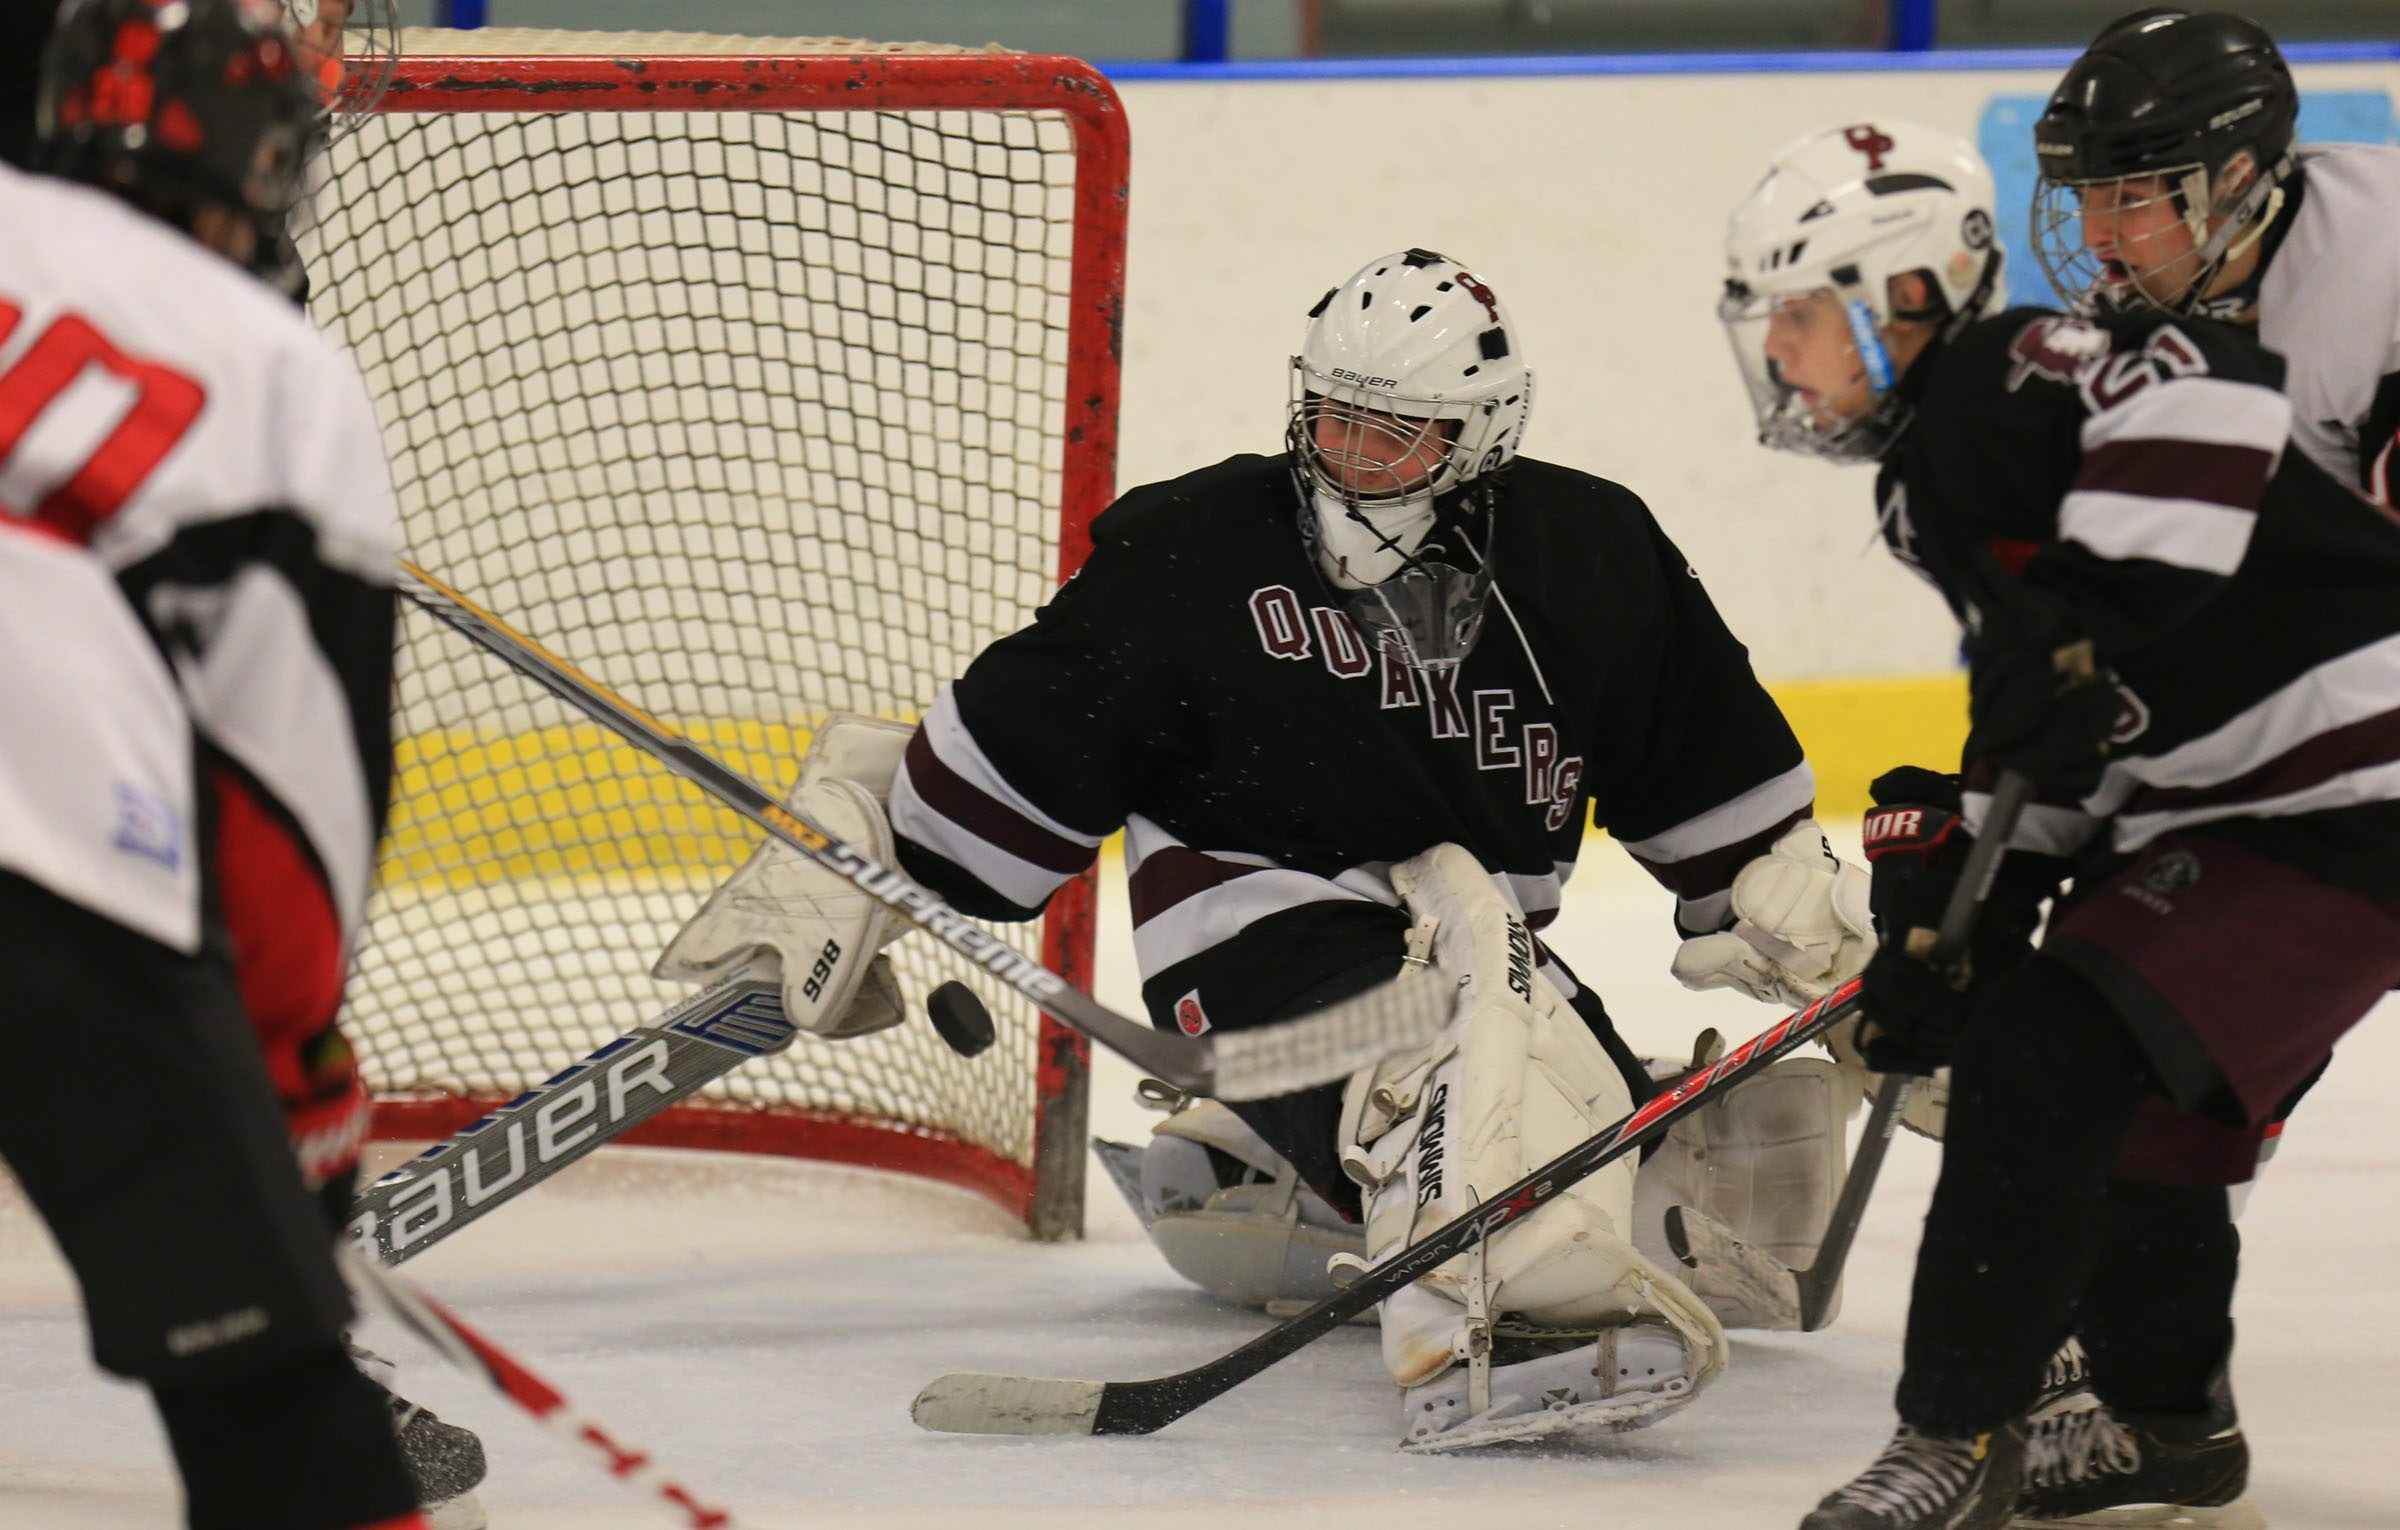 Orchard Park goaltender Tom Held makes a third-period save against Clarence at Northtown Center during the OP win.